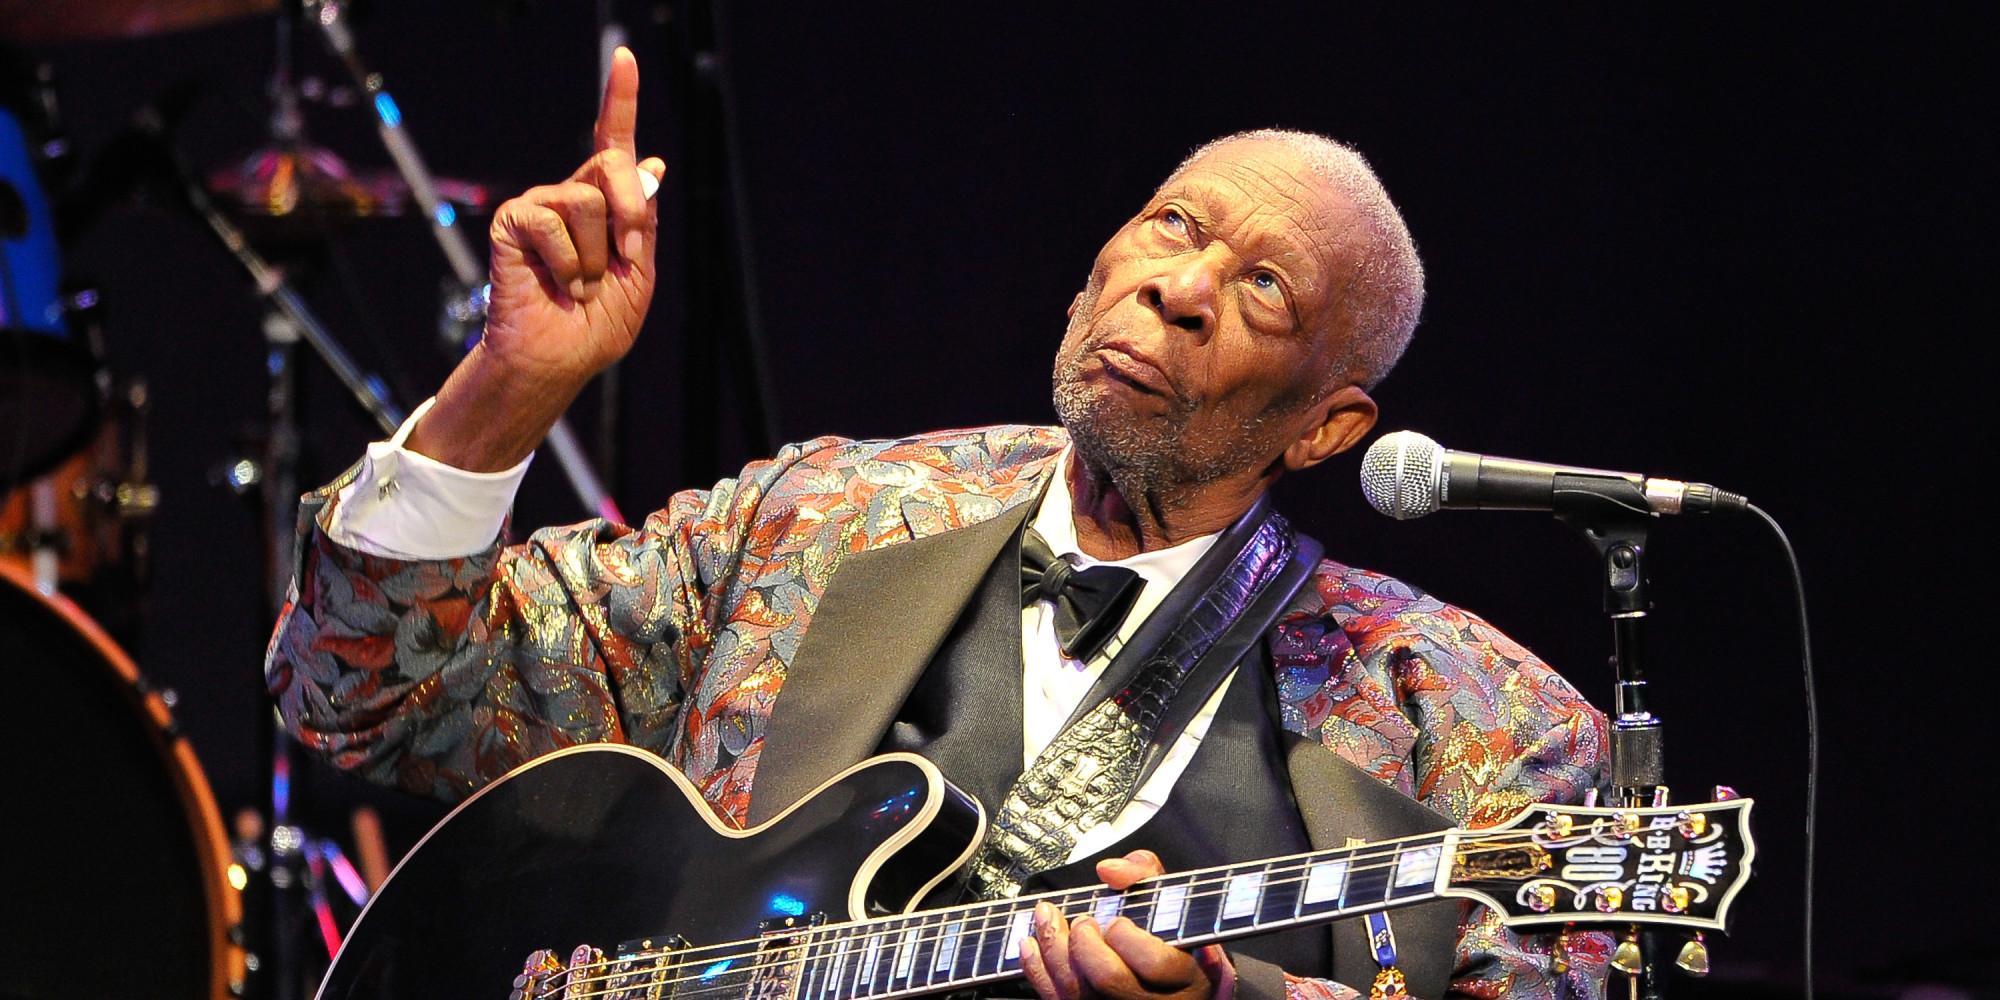 erratic b b king performance leads to early departures for fans huffpost. Black Bedroom Furniture Sets. Home Design Ideas